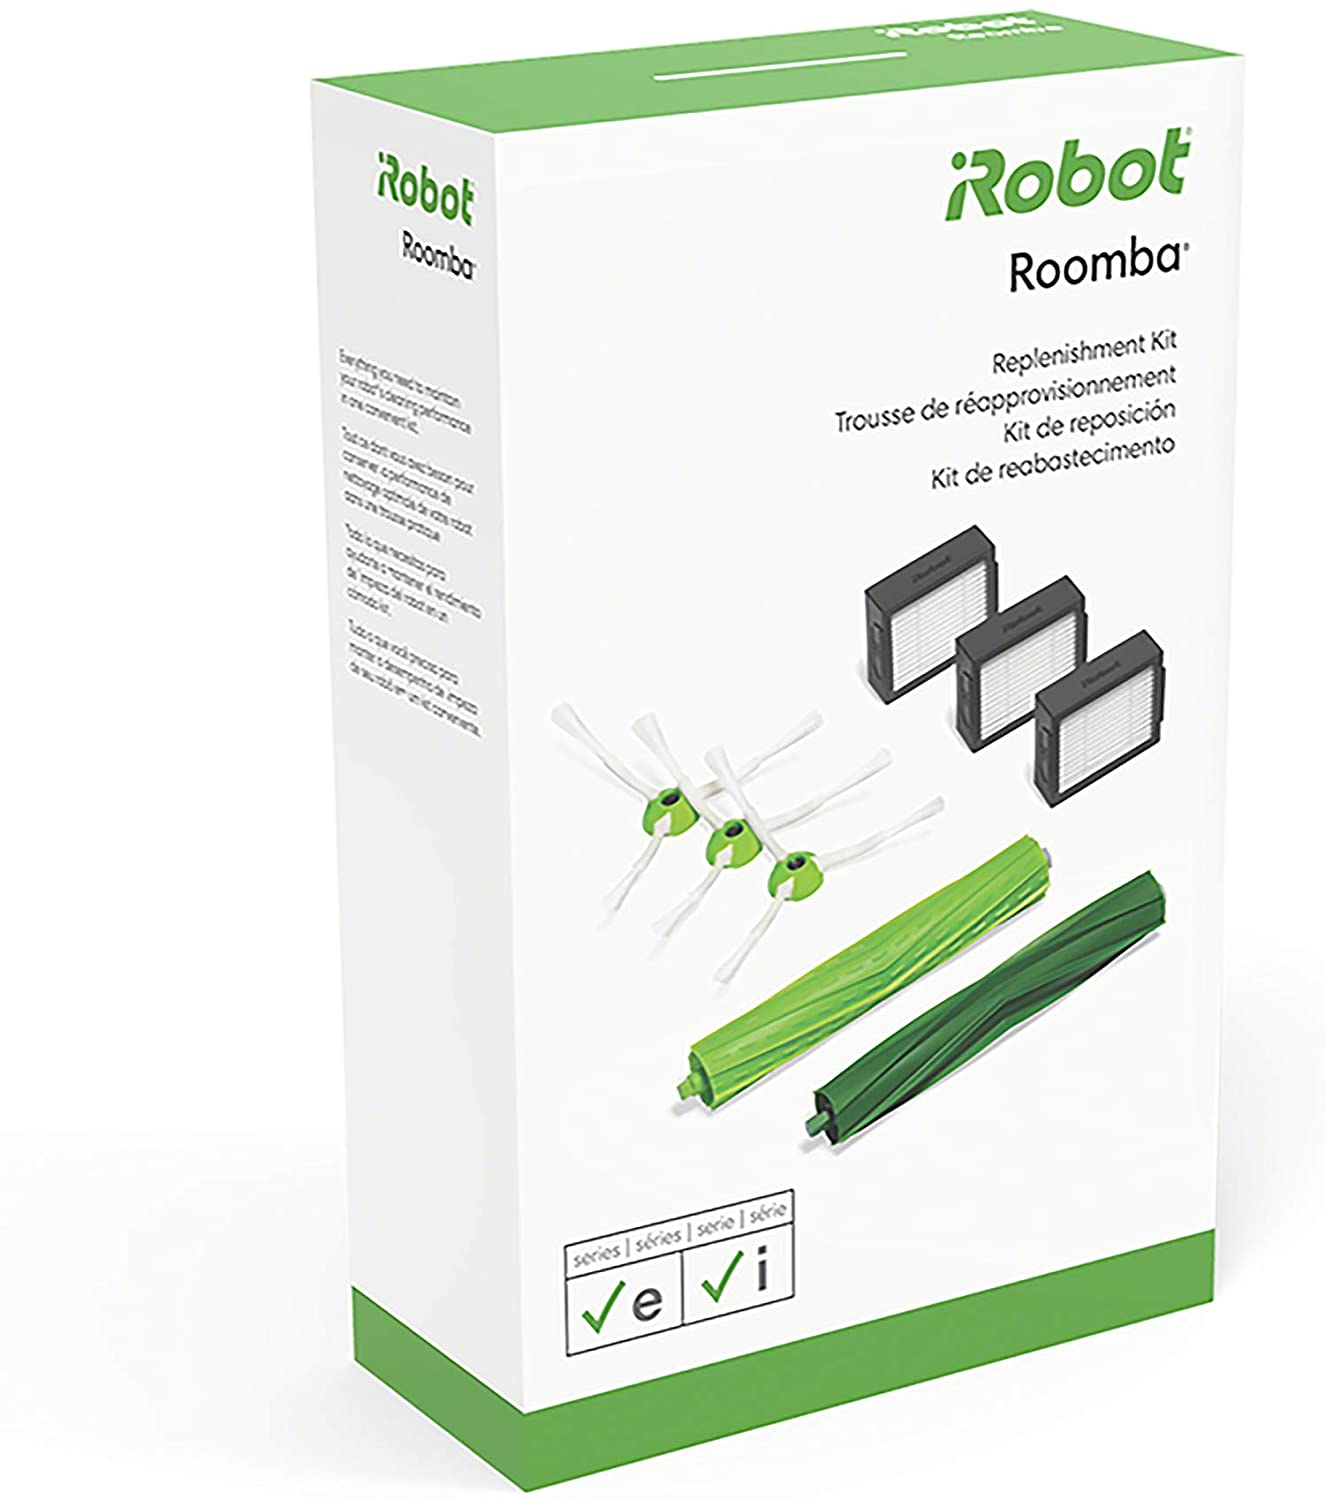 iRobot Authentic Replacement Parts $29.99